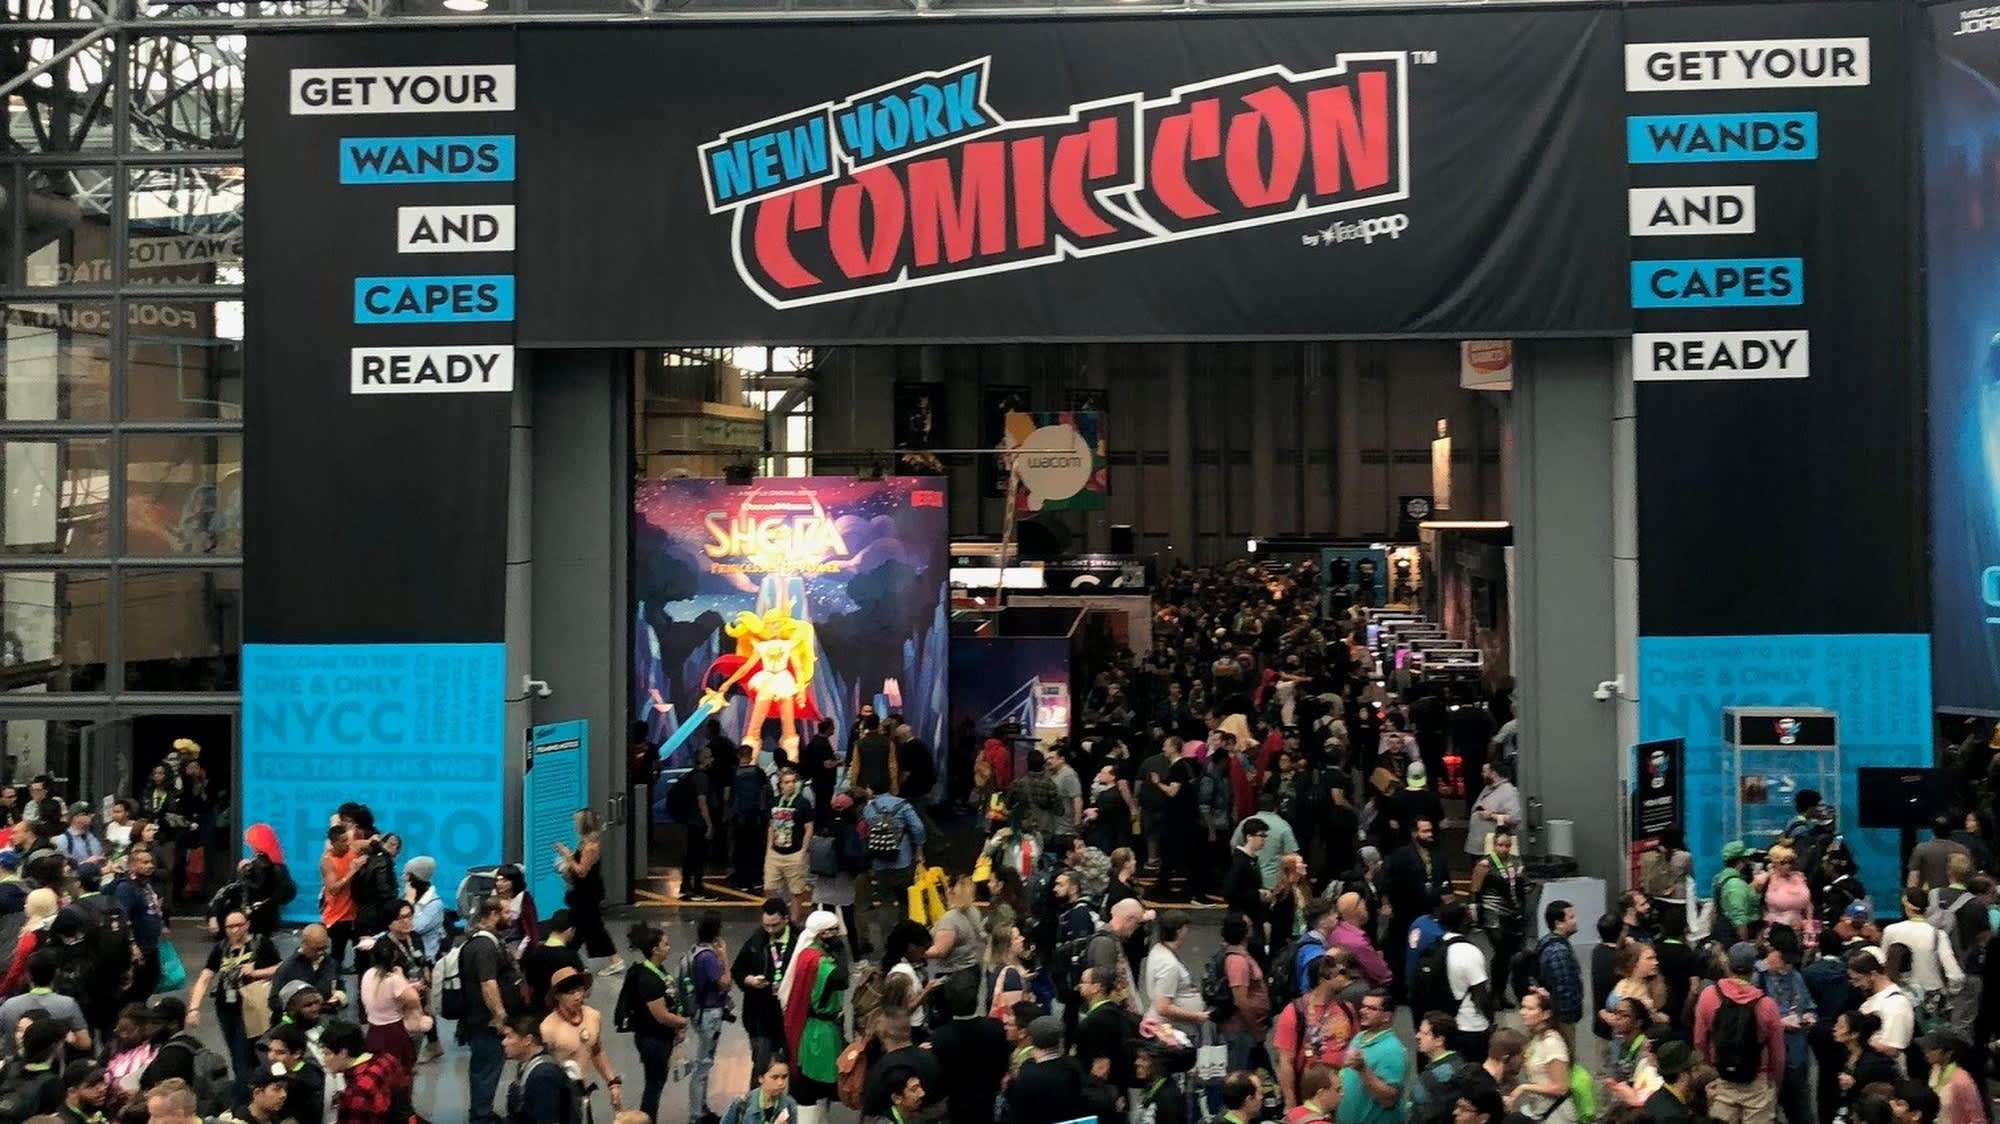 UMB Bank and DC are offering a new rewards credit card—just in time for NYC Comic Con